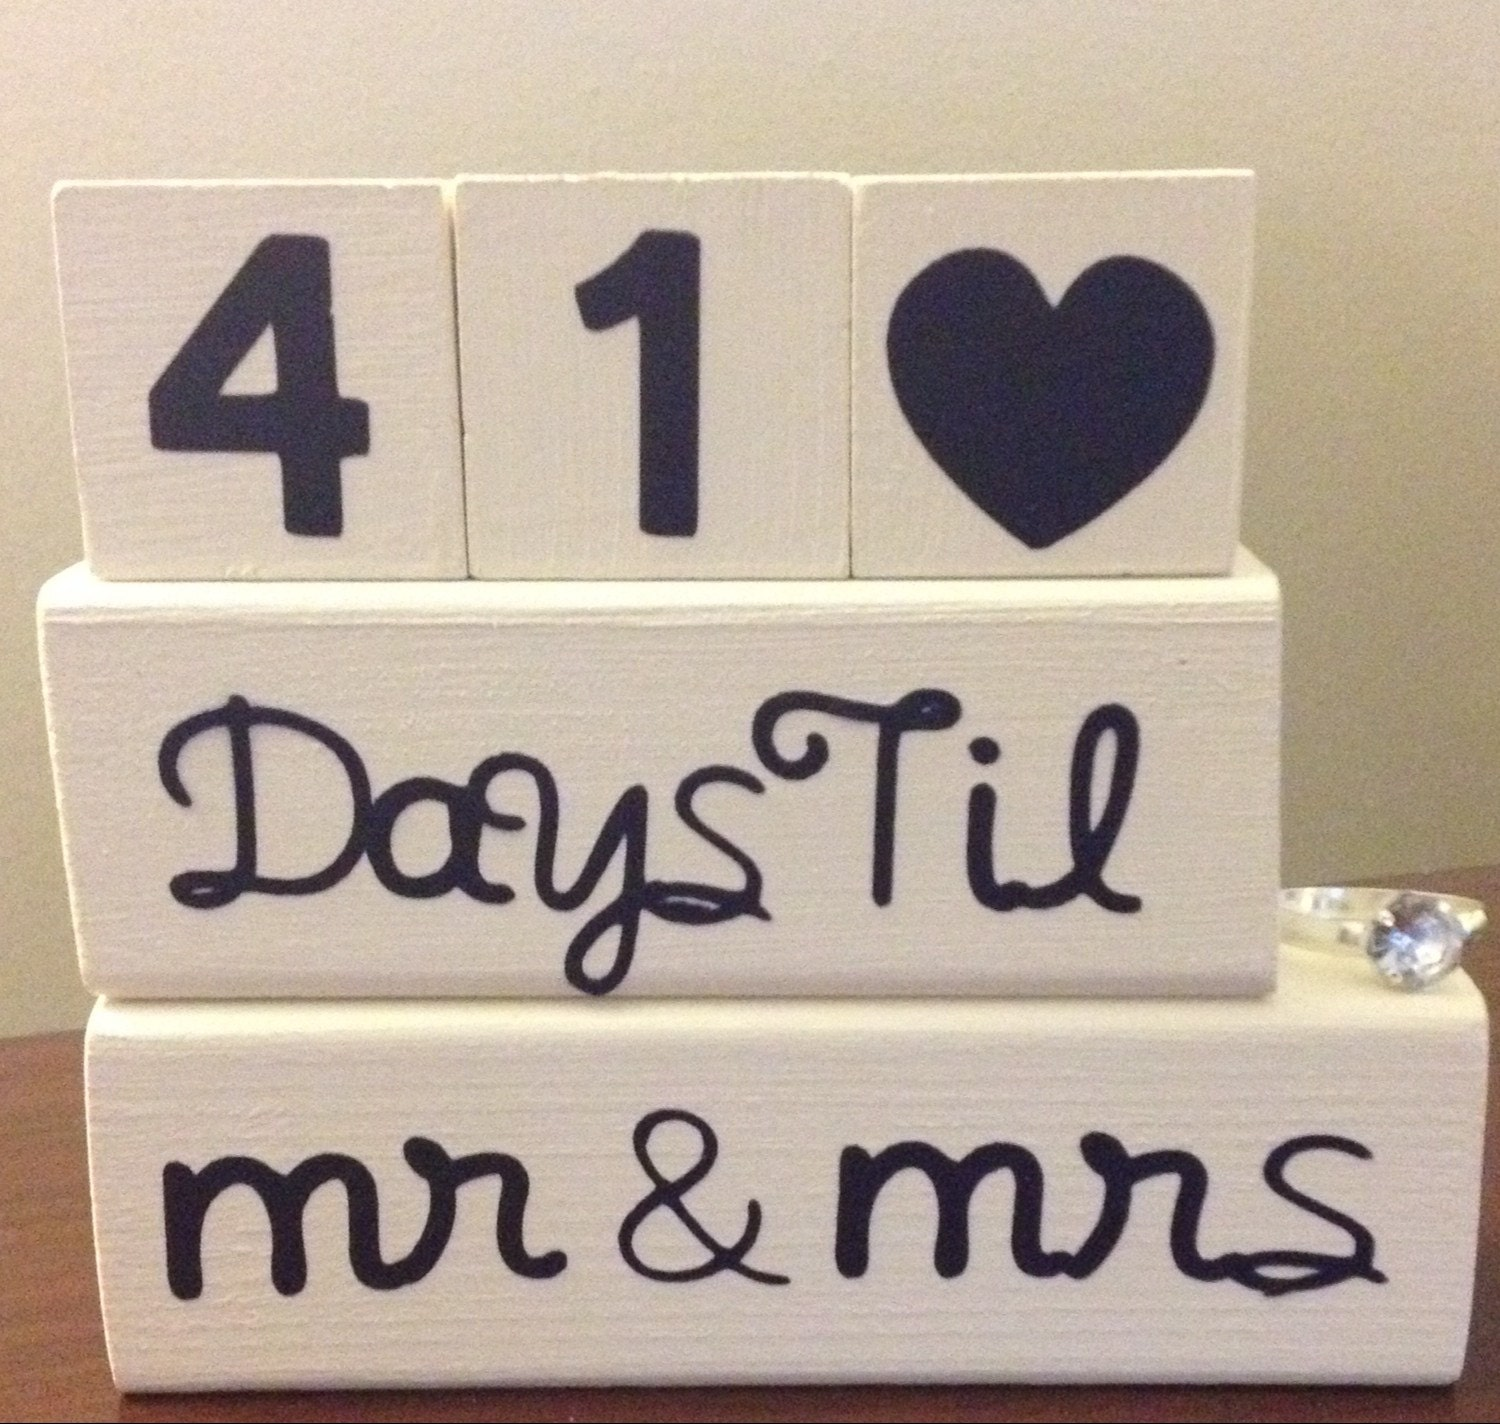 Wedding Countdown Gifts For Bride: Bride And Groom Wedding Countdown Blocks